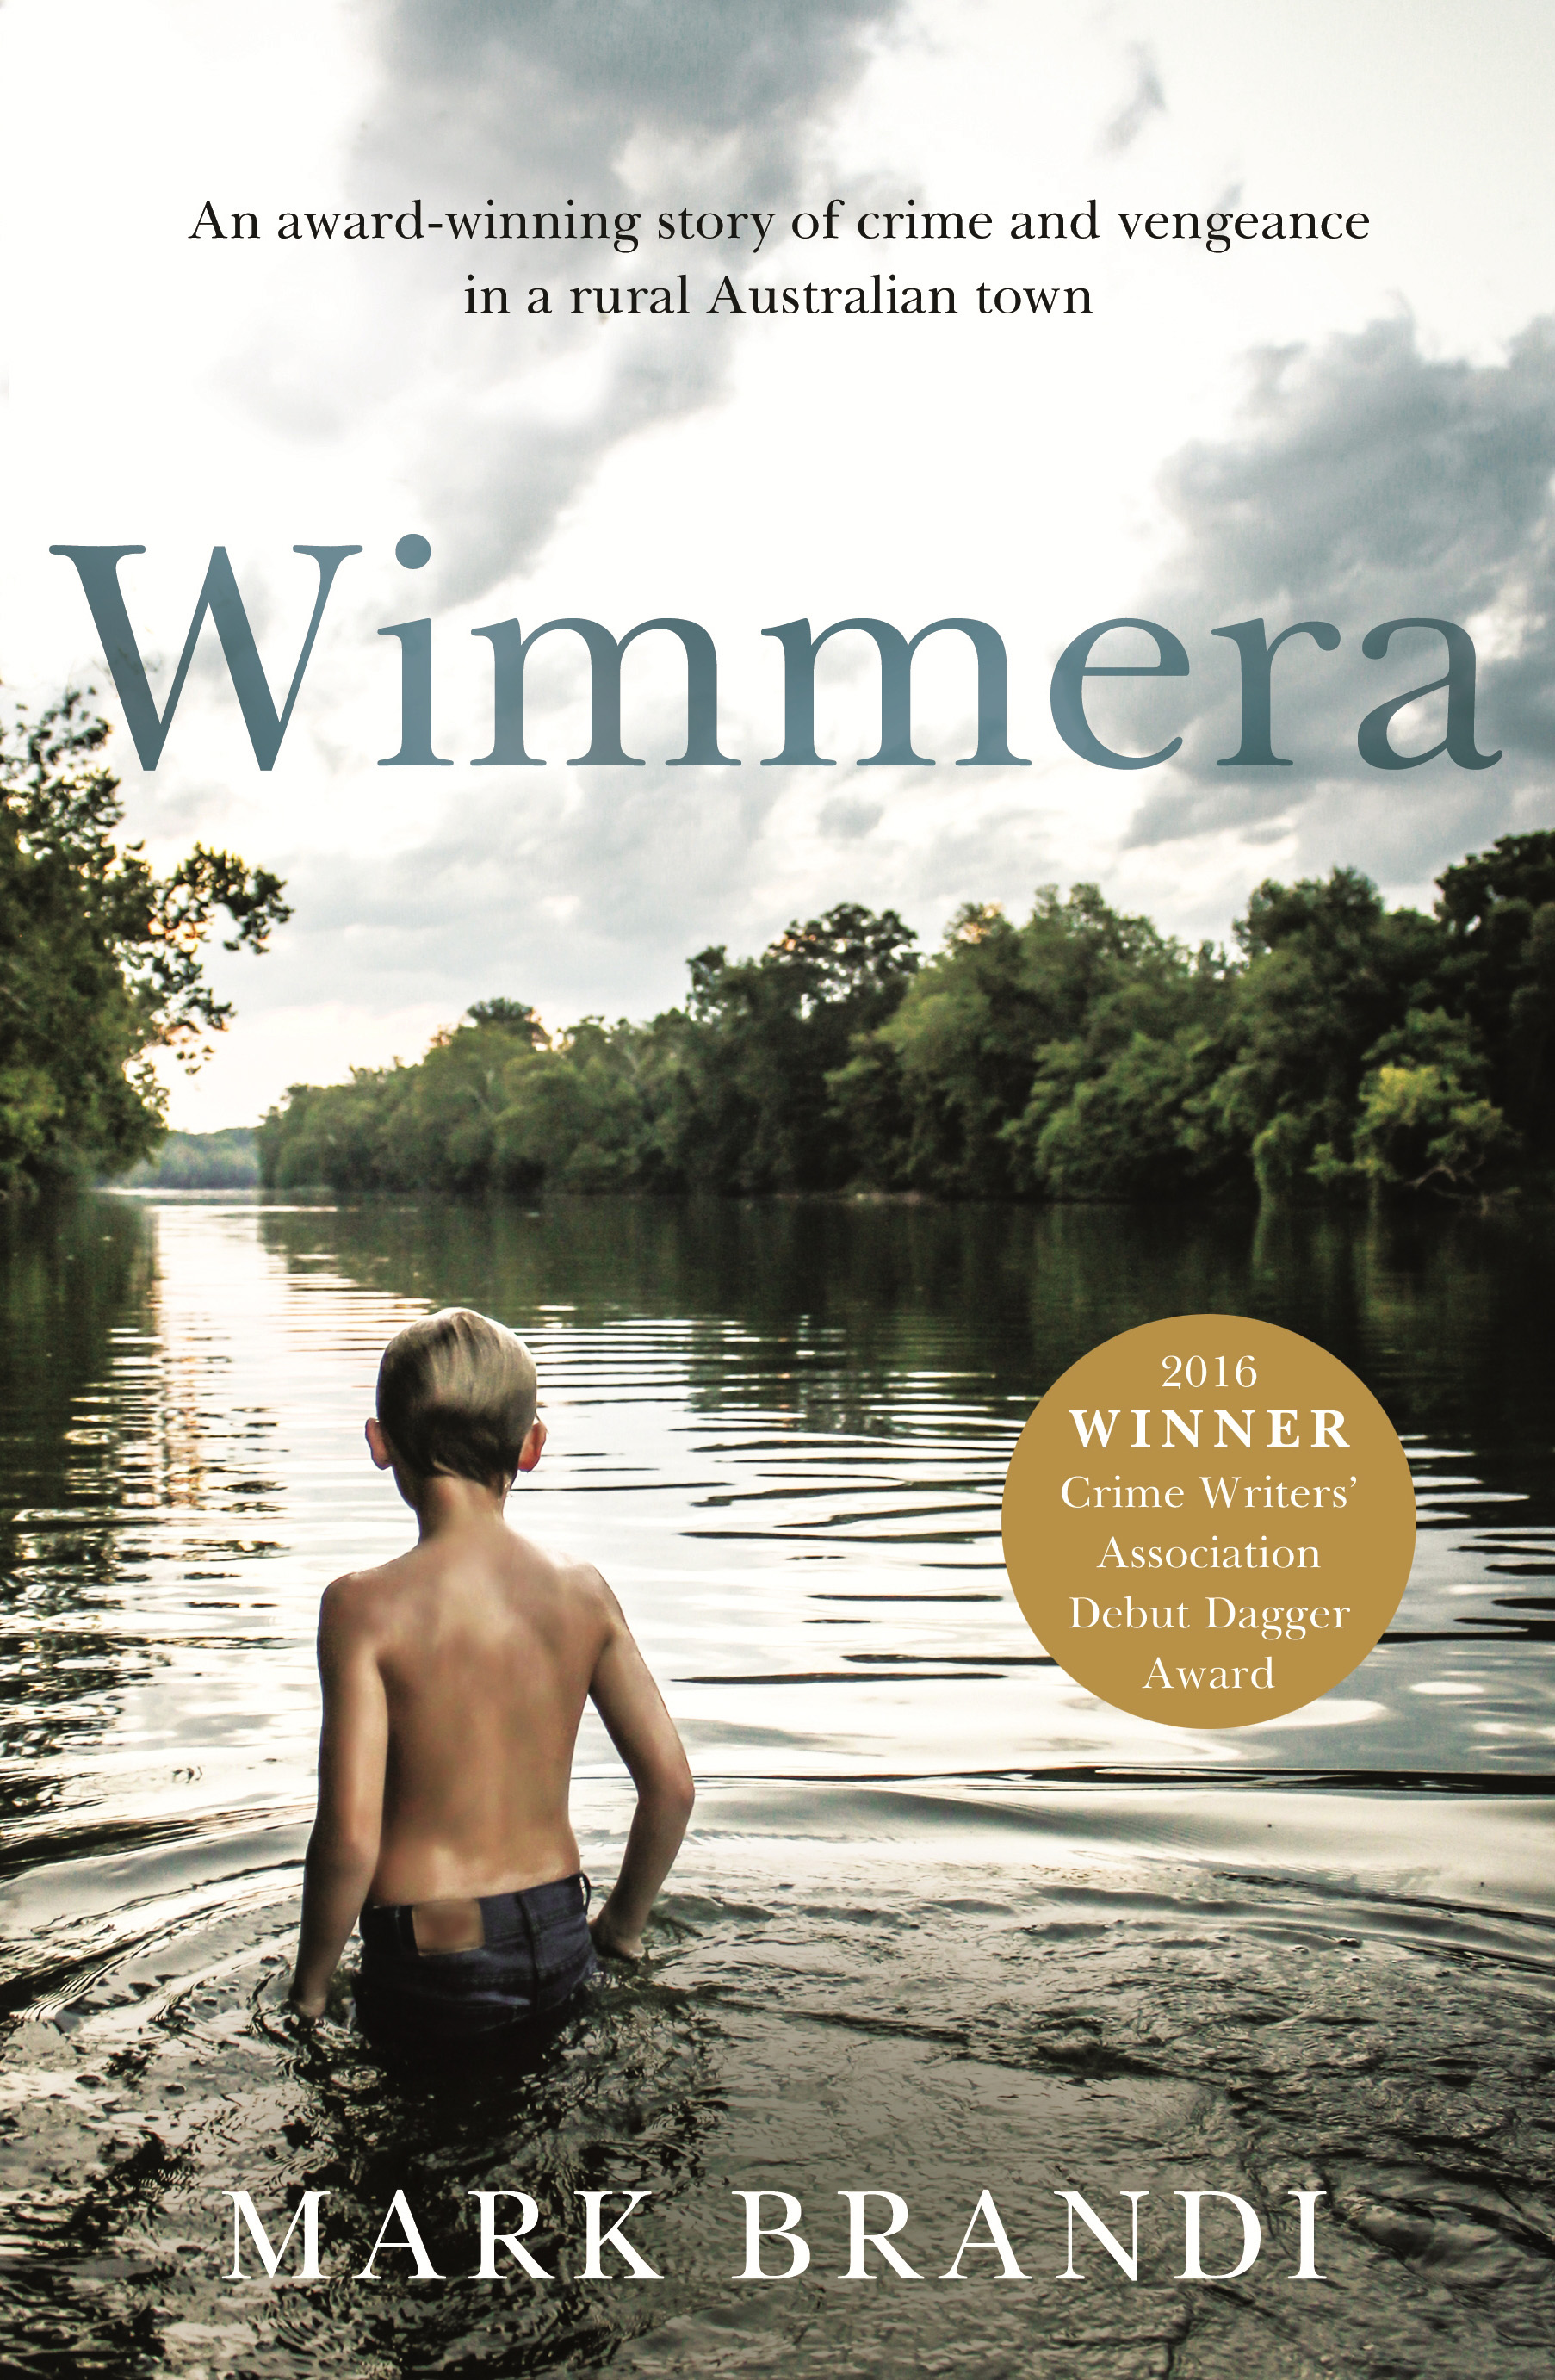 Cover image of the book 'Wimmera' by Mark Brandi